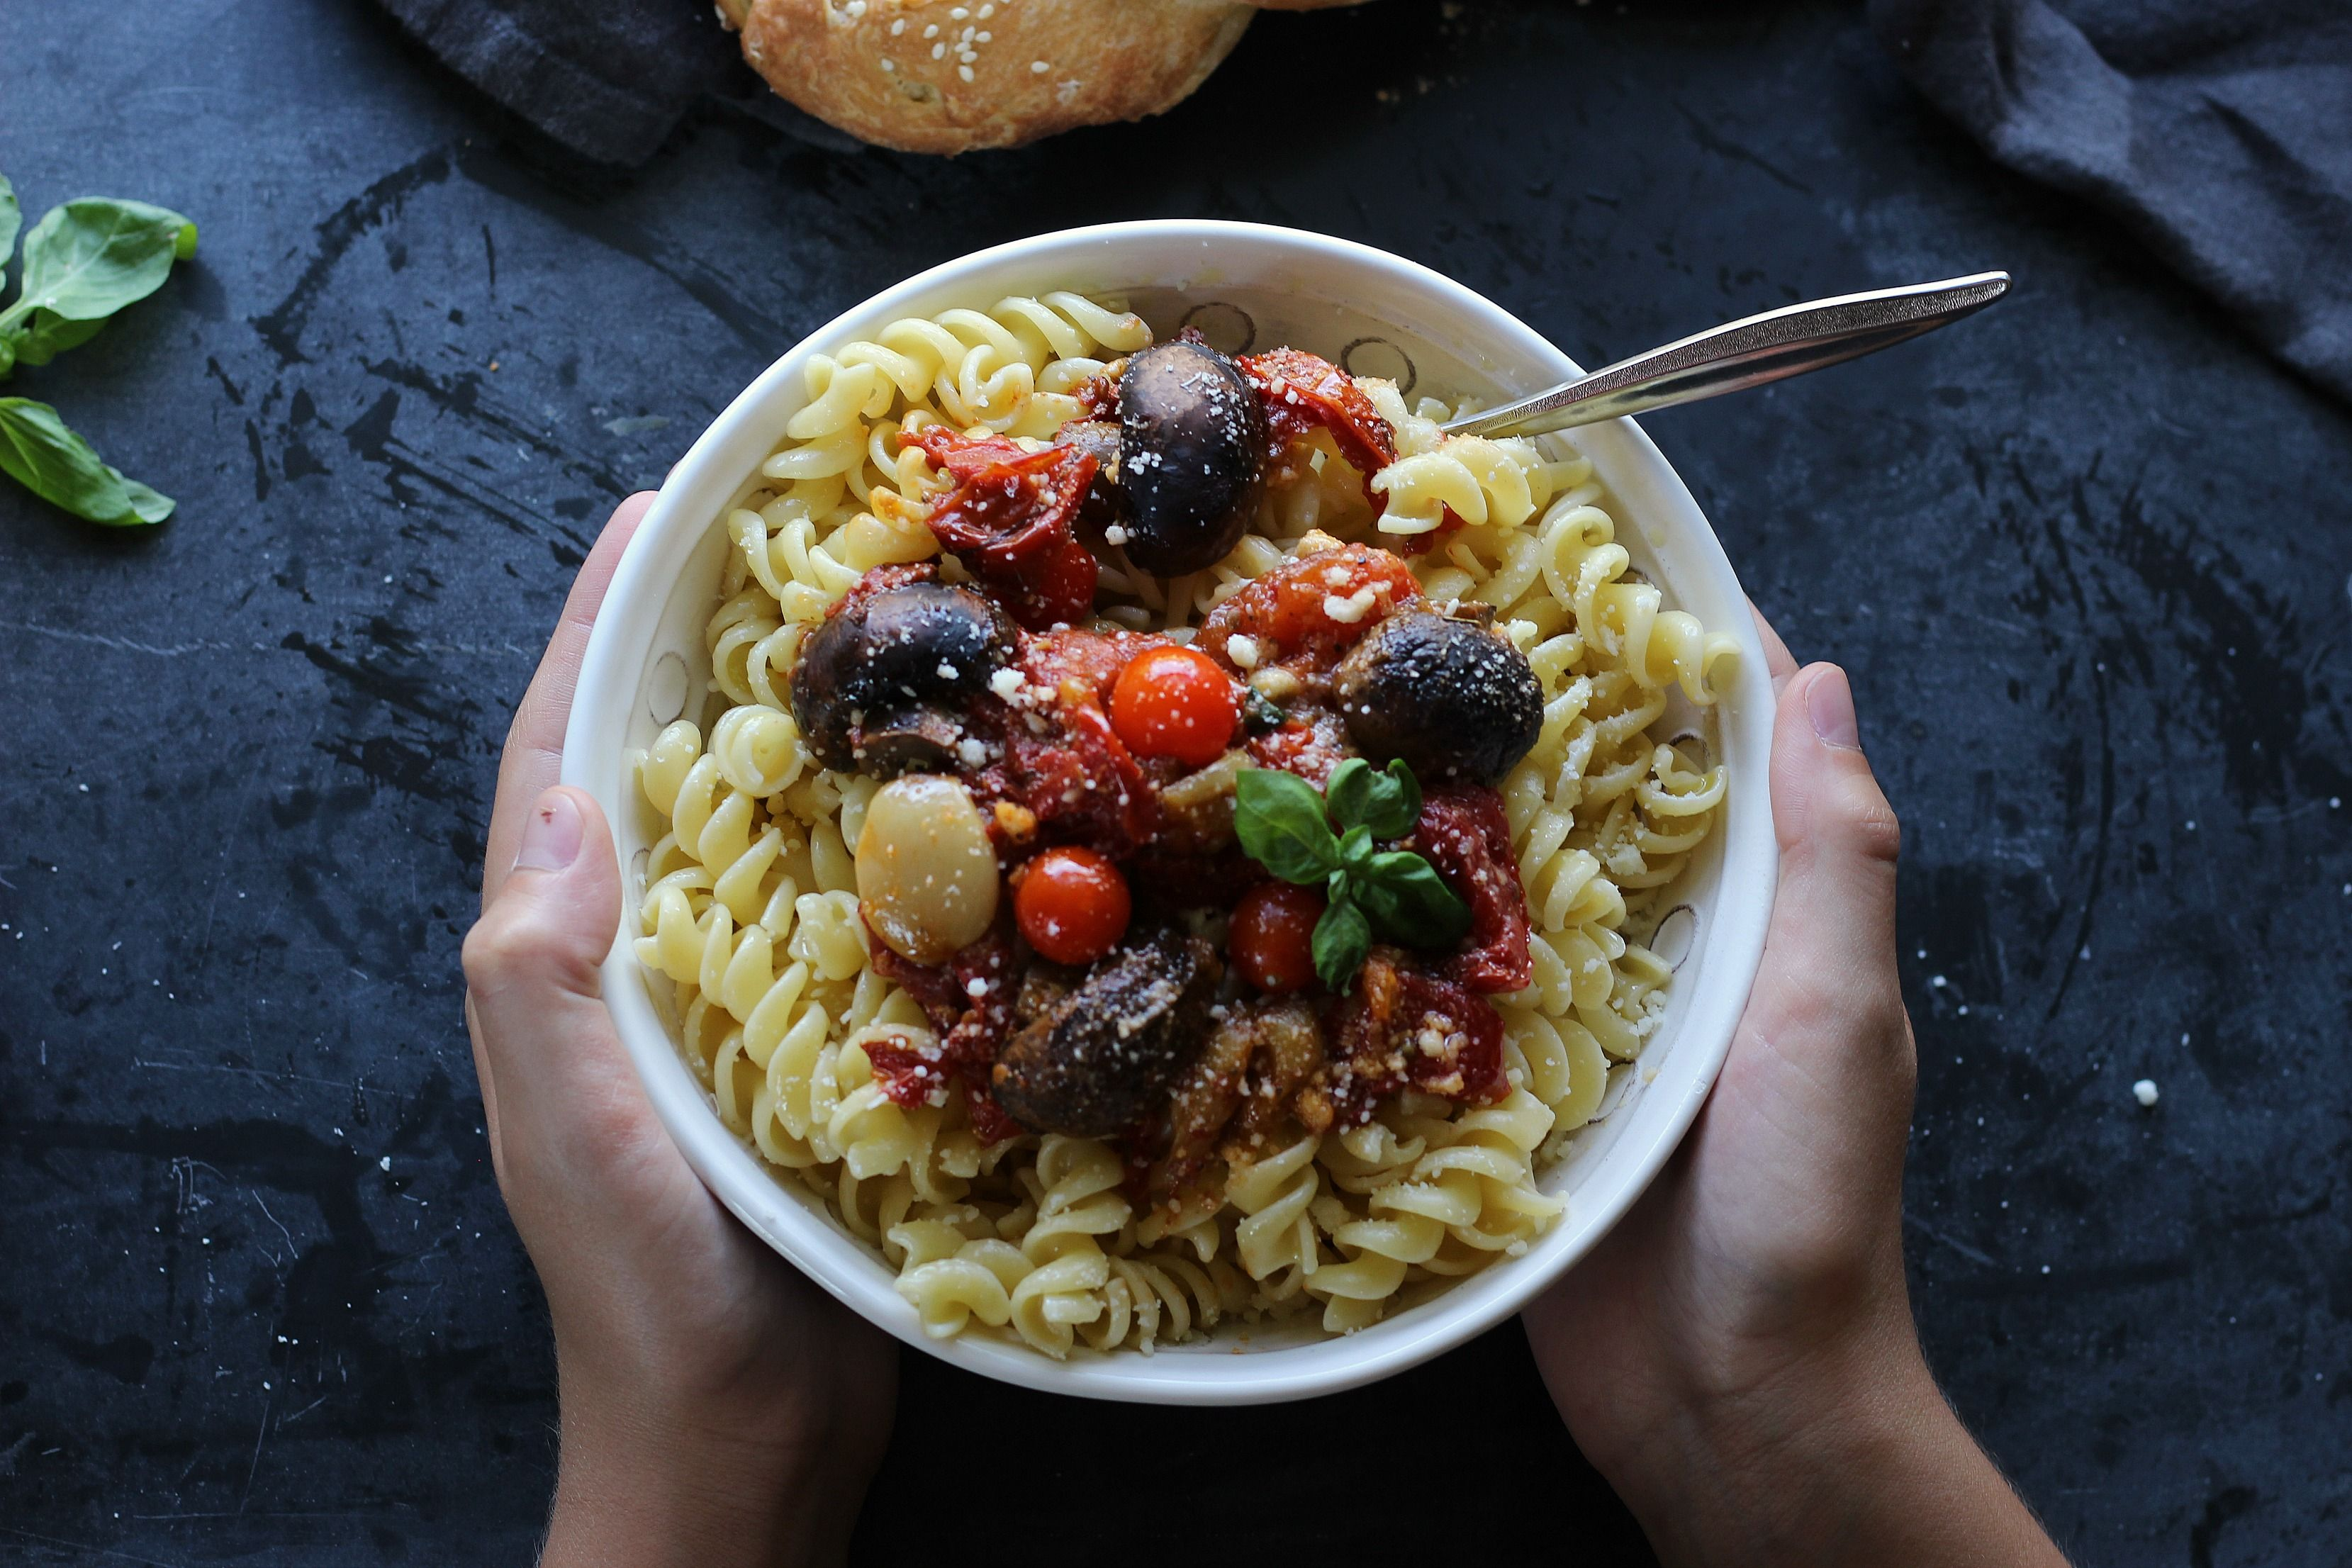 Add a whole lot of flavor to simple dishes with this easy #Paleo and #Glutenfree Roasted Tomato & Mushroom Garlicky Chunky Sauce | gardeninthekitchen.com